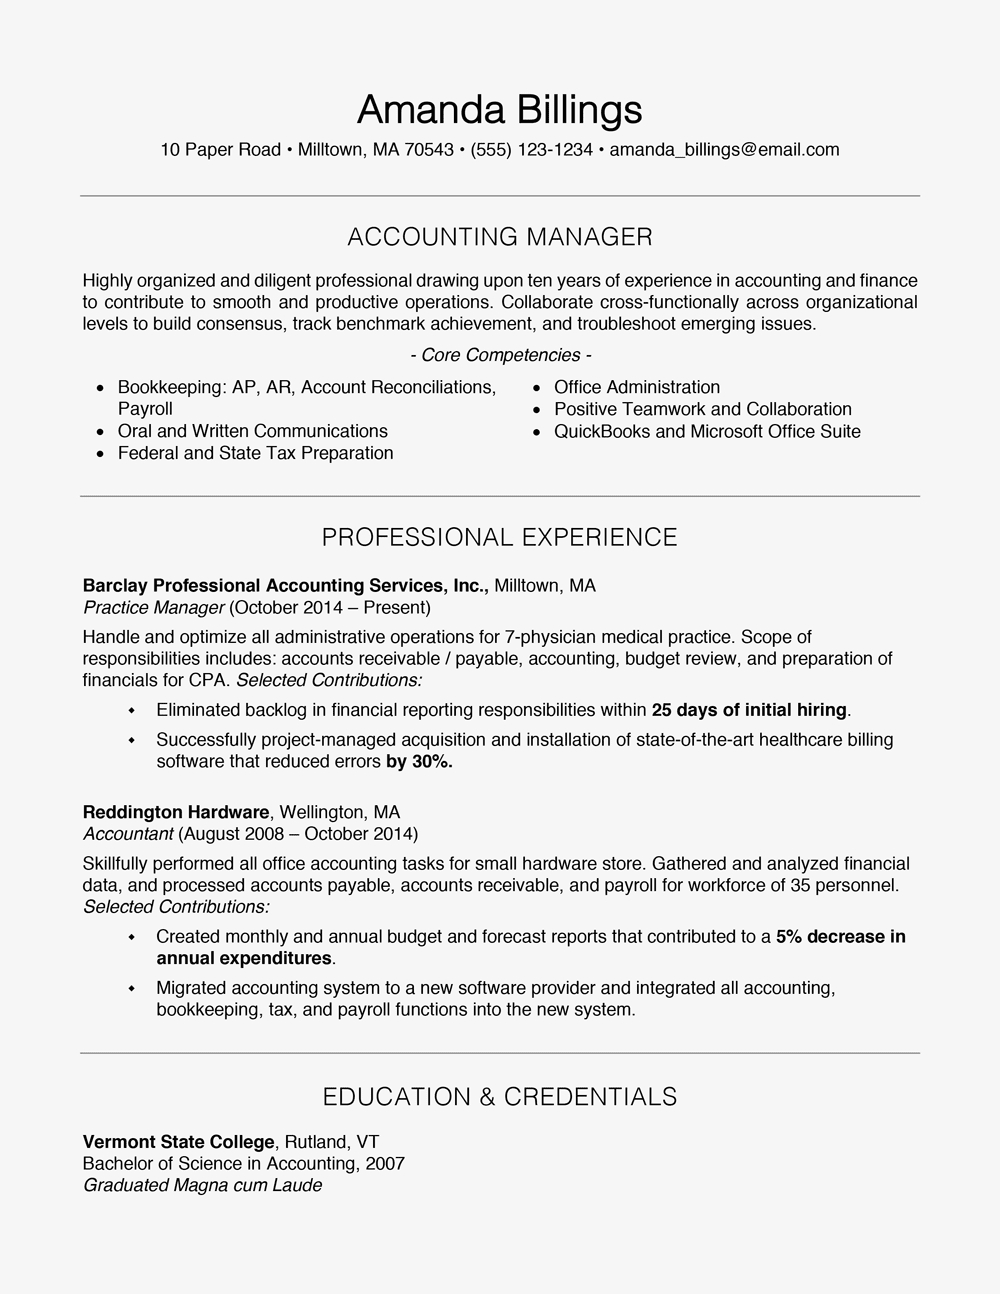 Medical Billing Resumes Examples - 100 Free Professional Resume Examples and Writing Tips